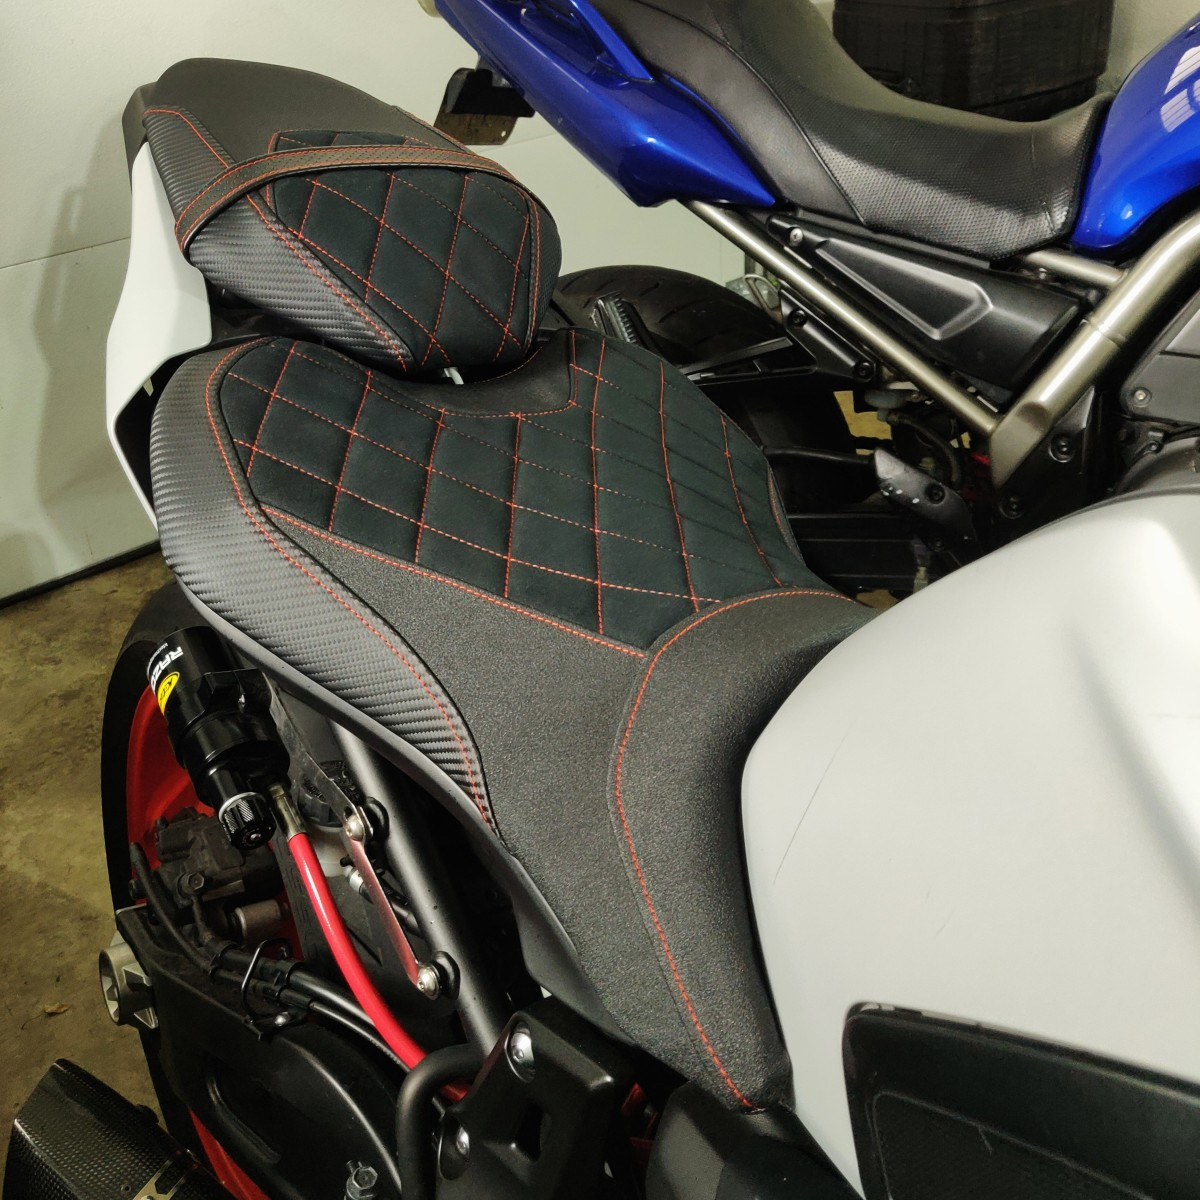 A seat cover by Luimoto